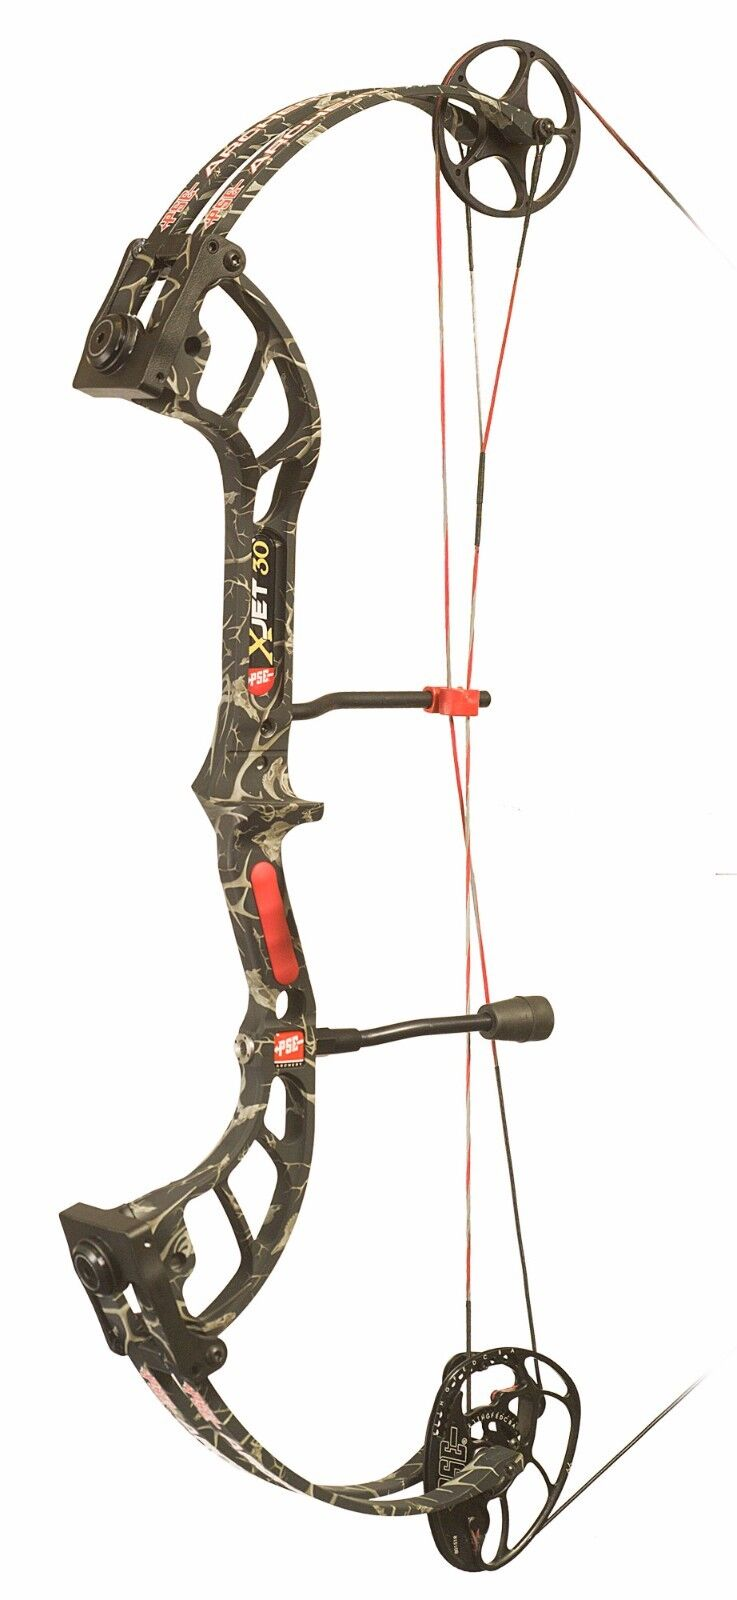 Pse Archery Serial Number Location - transseven